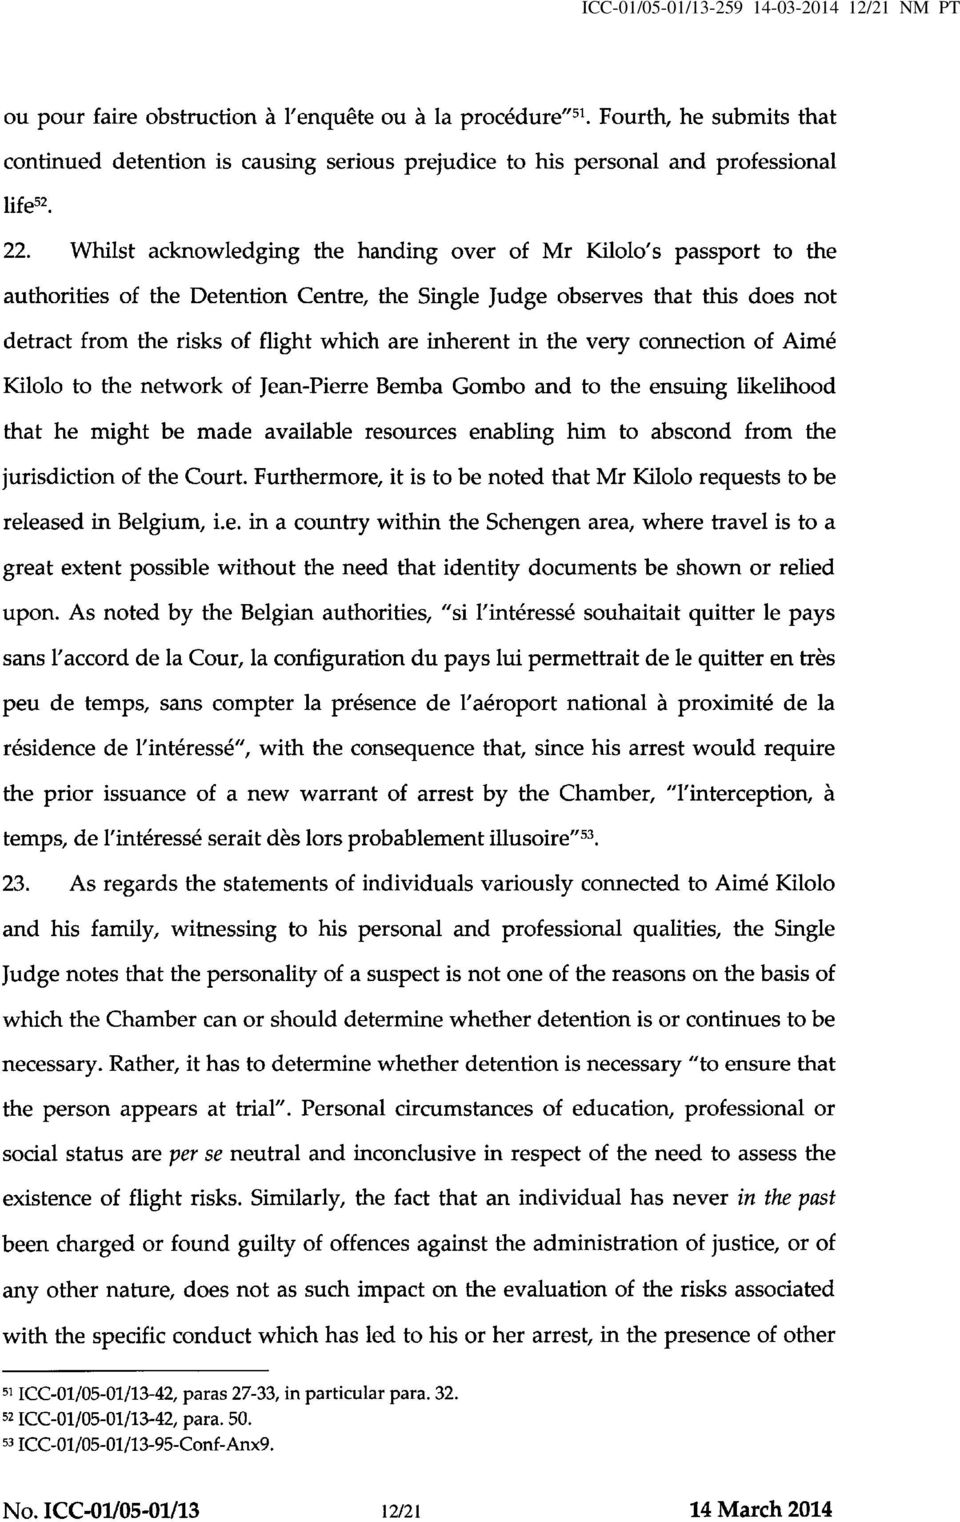 Whilst acknowledging the handing over of Mr Kilolo's passport to the authorities of the Detention Centre, the Single Judge observes that this does not detract from the risks of flight which are